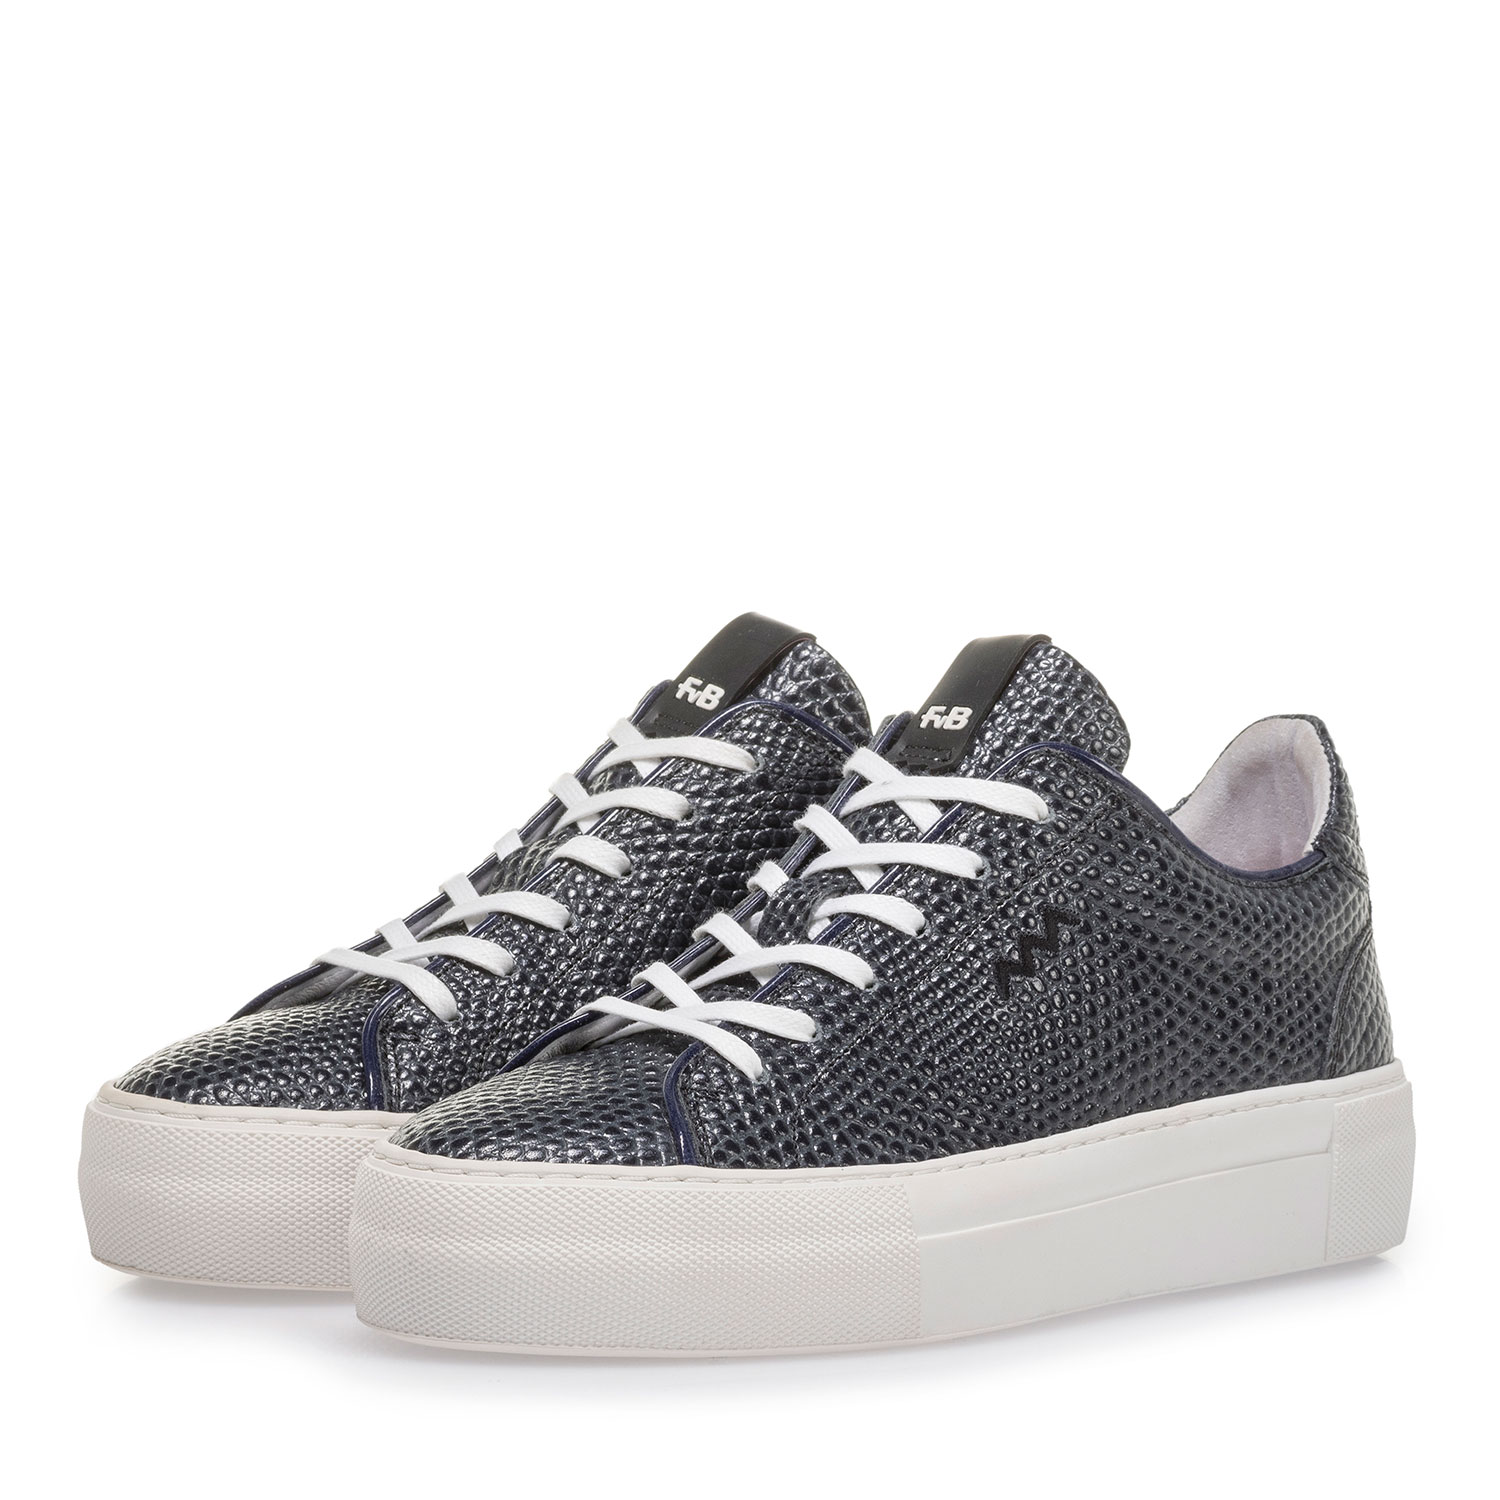 85297/01 - Dark blue sneaker with black print